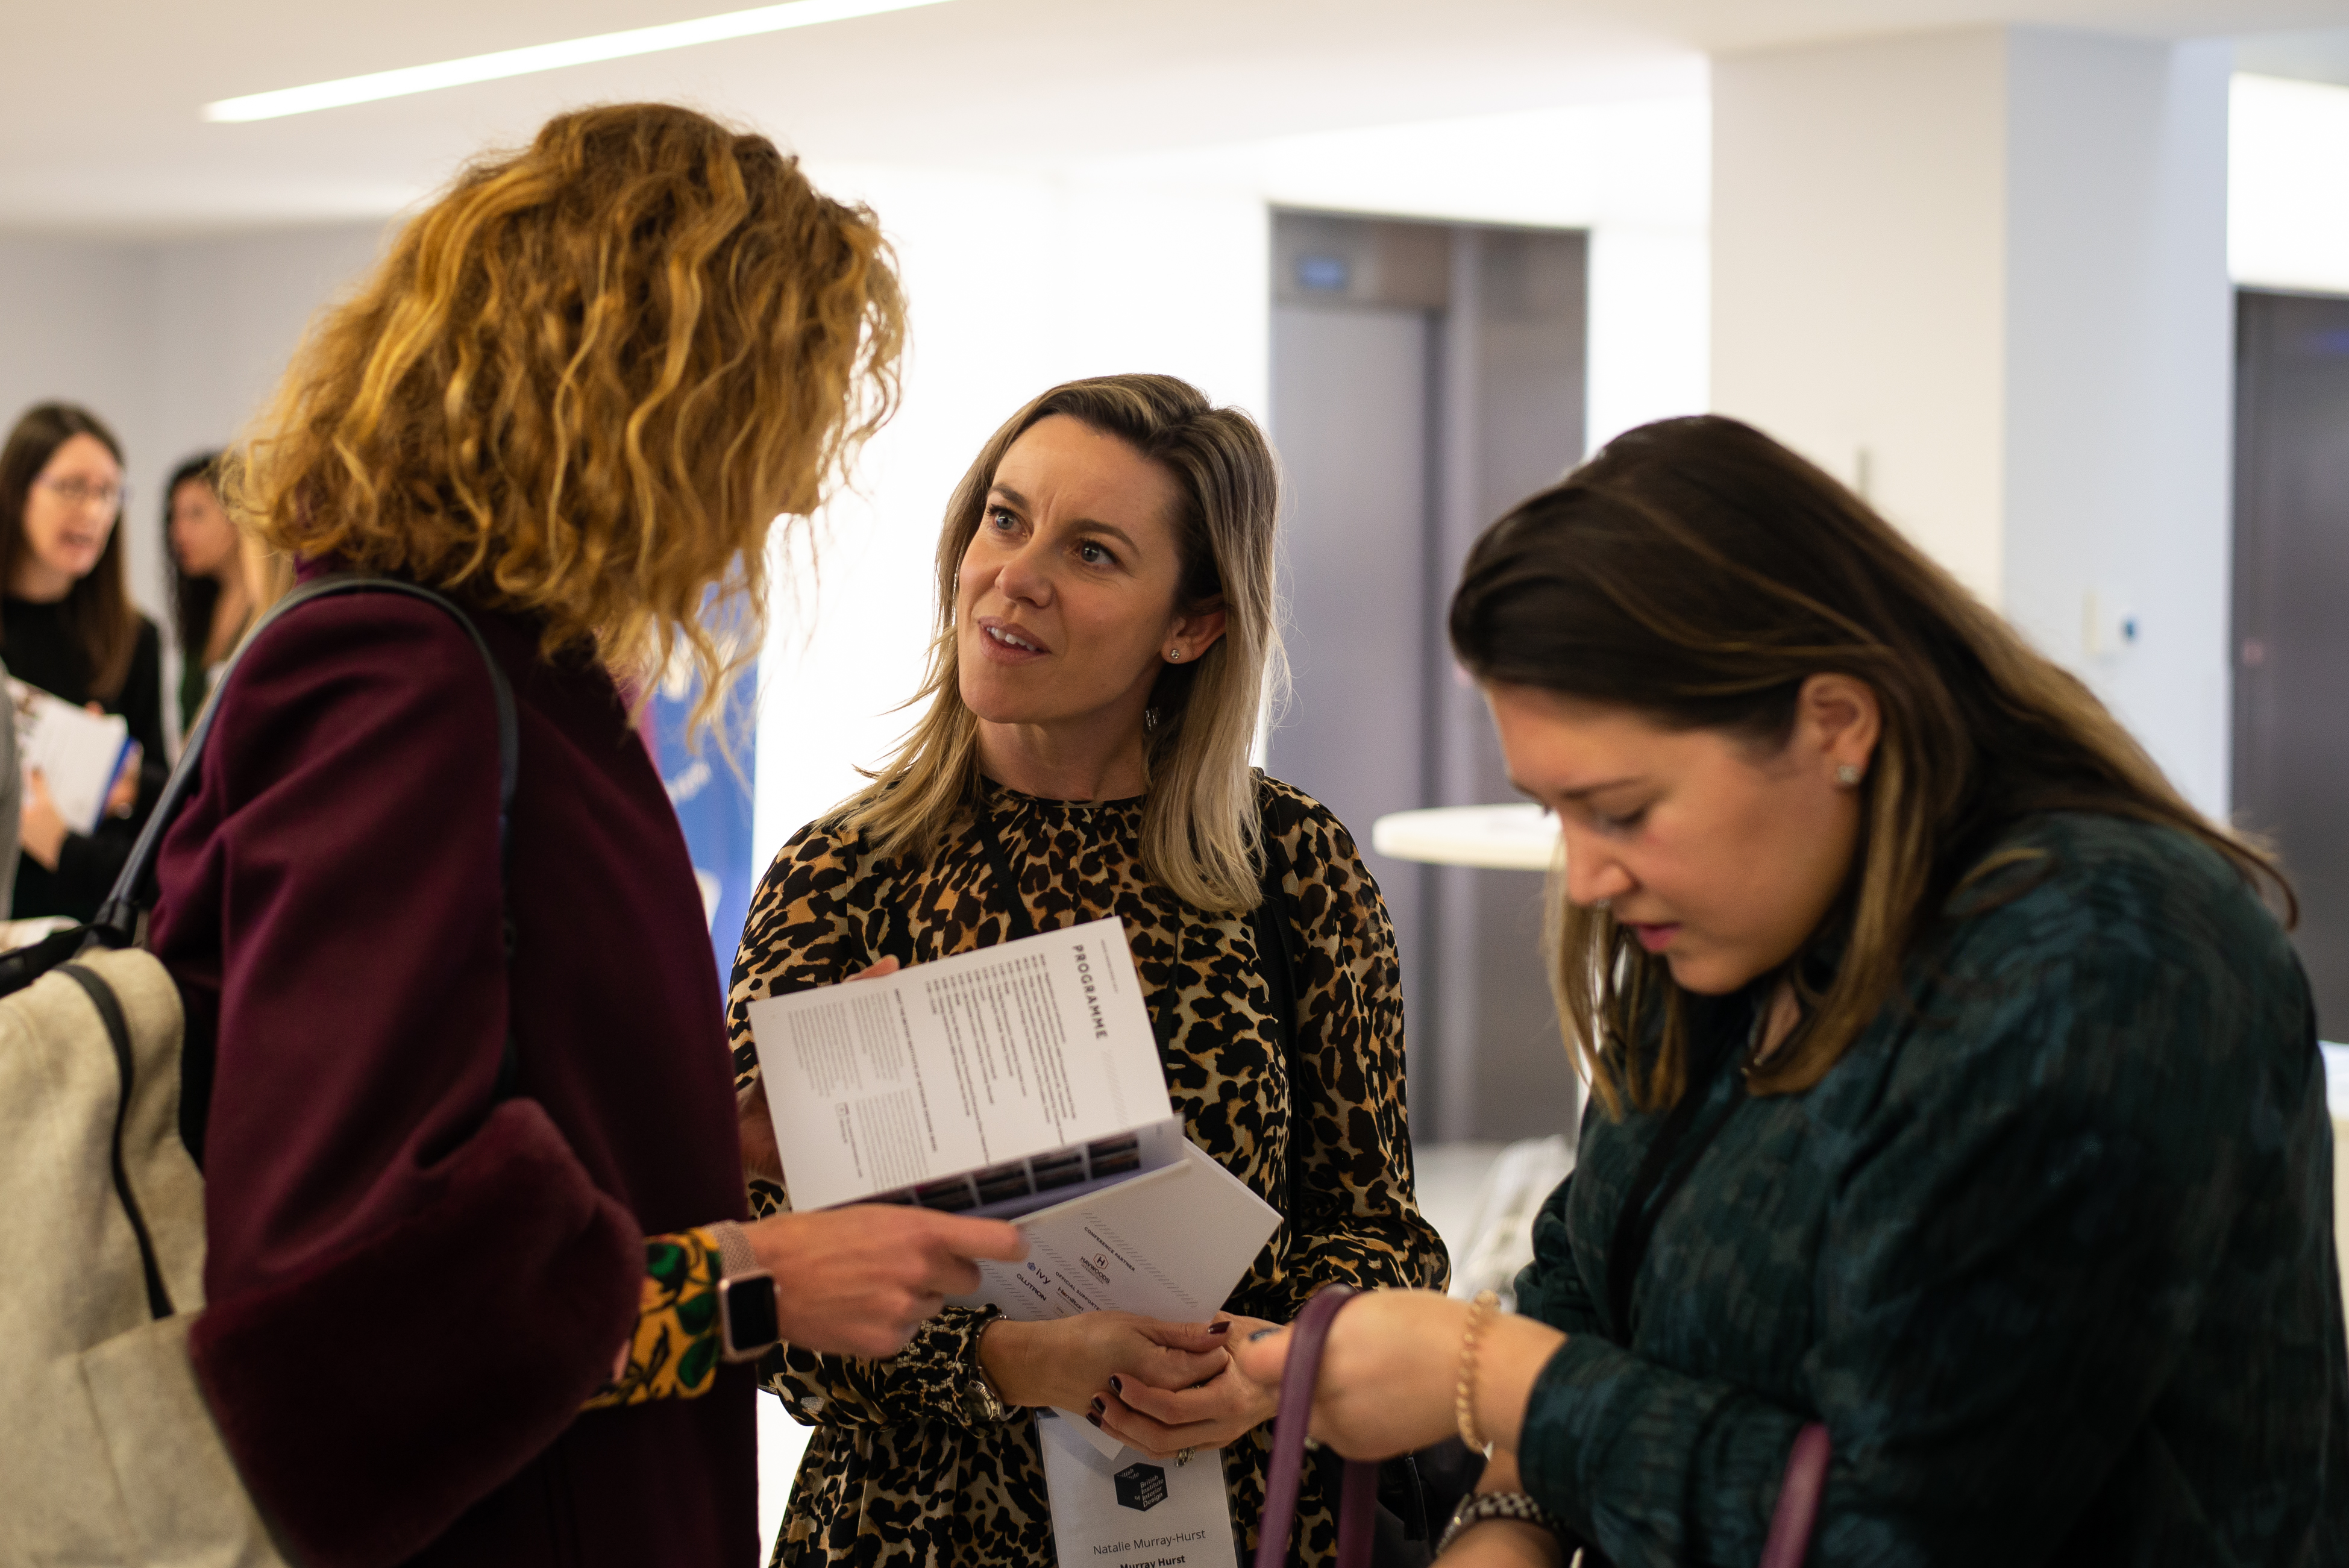 The Biid Hosts Another Successful Conference Interiordesignermagazine